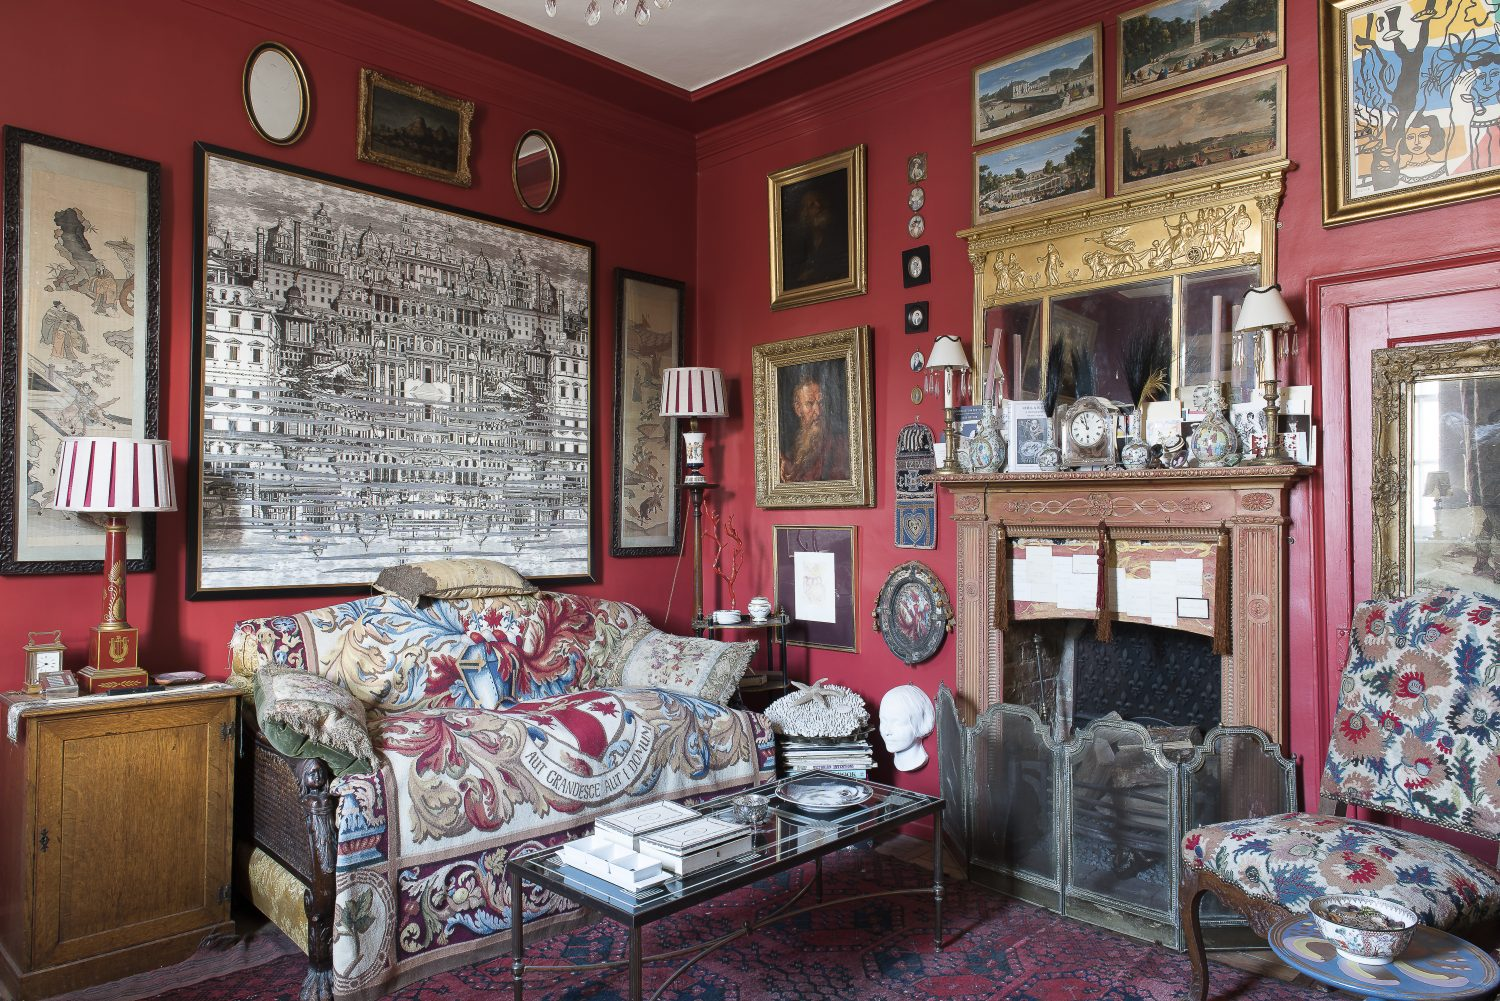 In the drawing room a Fornasetti print hangs over a sofa covered in a 1920s armorial tapestry. The chair is upholstered with a rare 18th century Turkish needlework